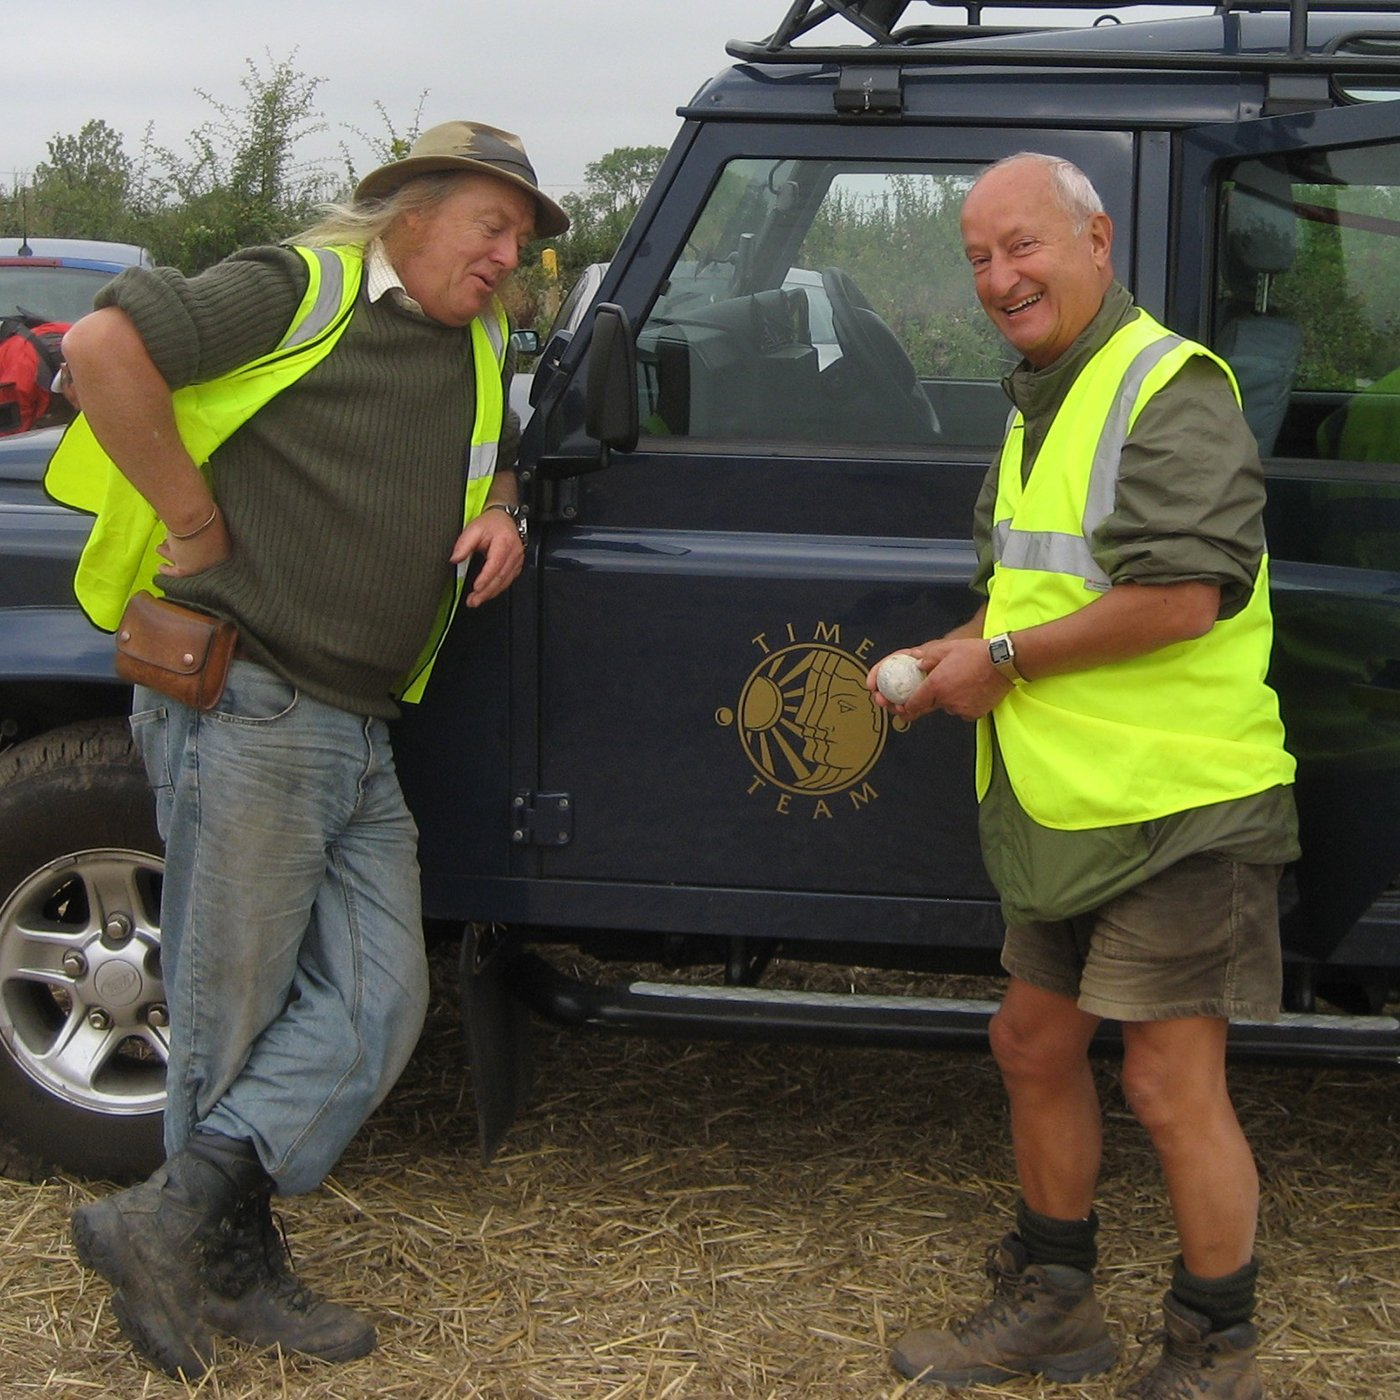 Phil Harding & John - Time Team